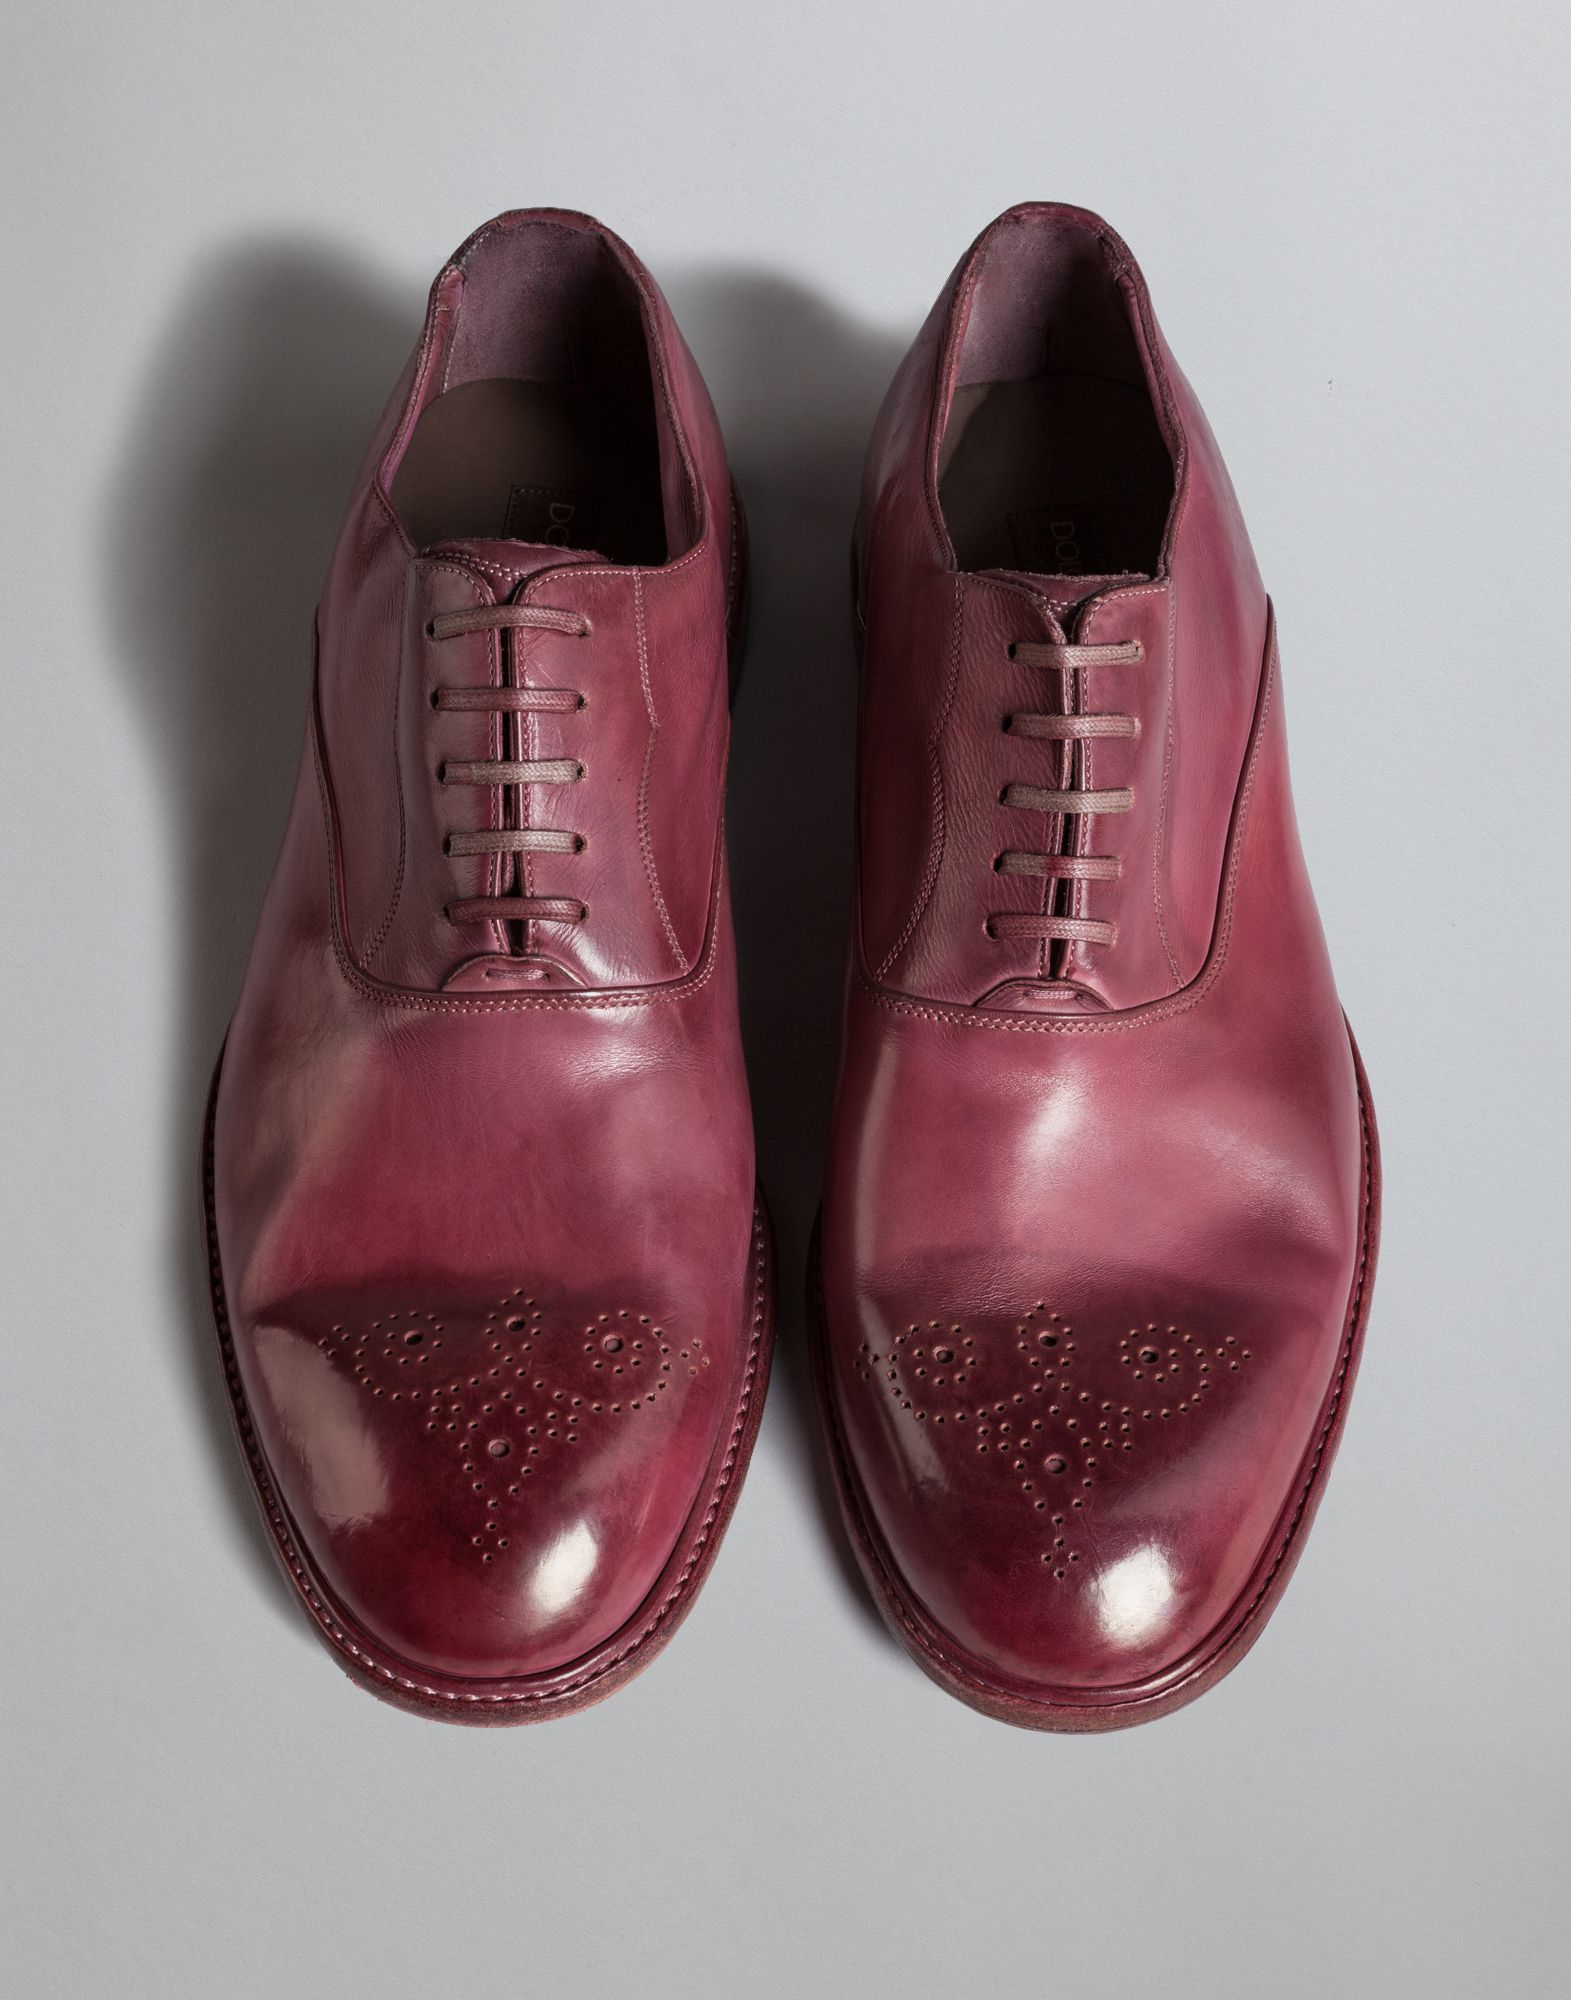 dolce gabbana dip dyed calfskin oxford shoe in pink for